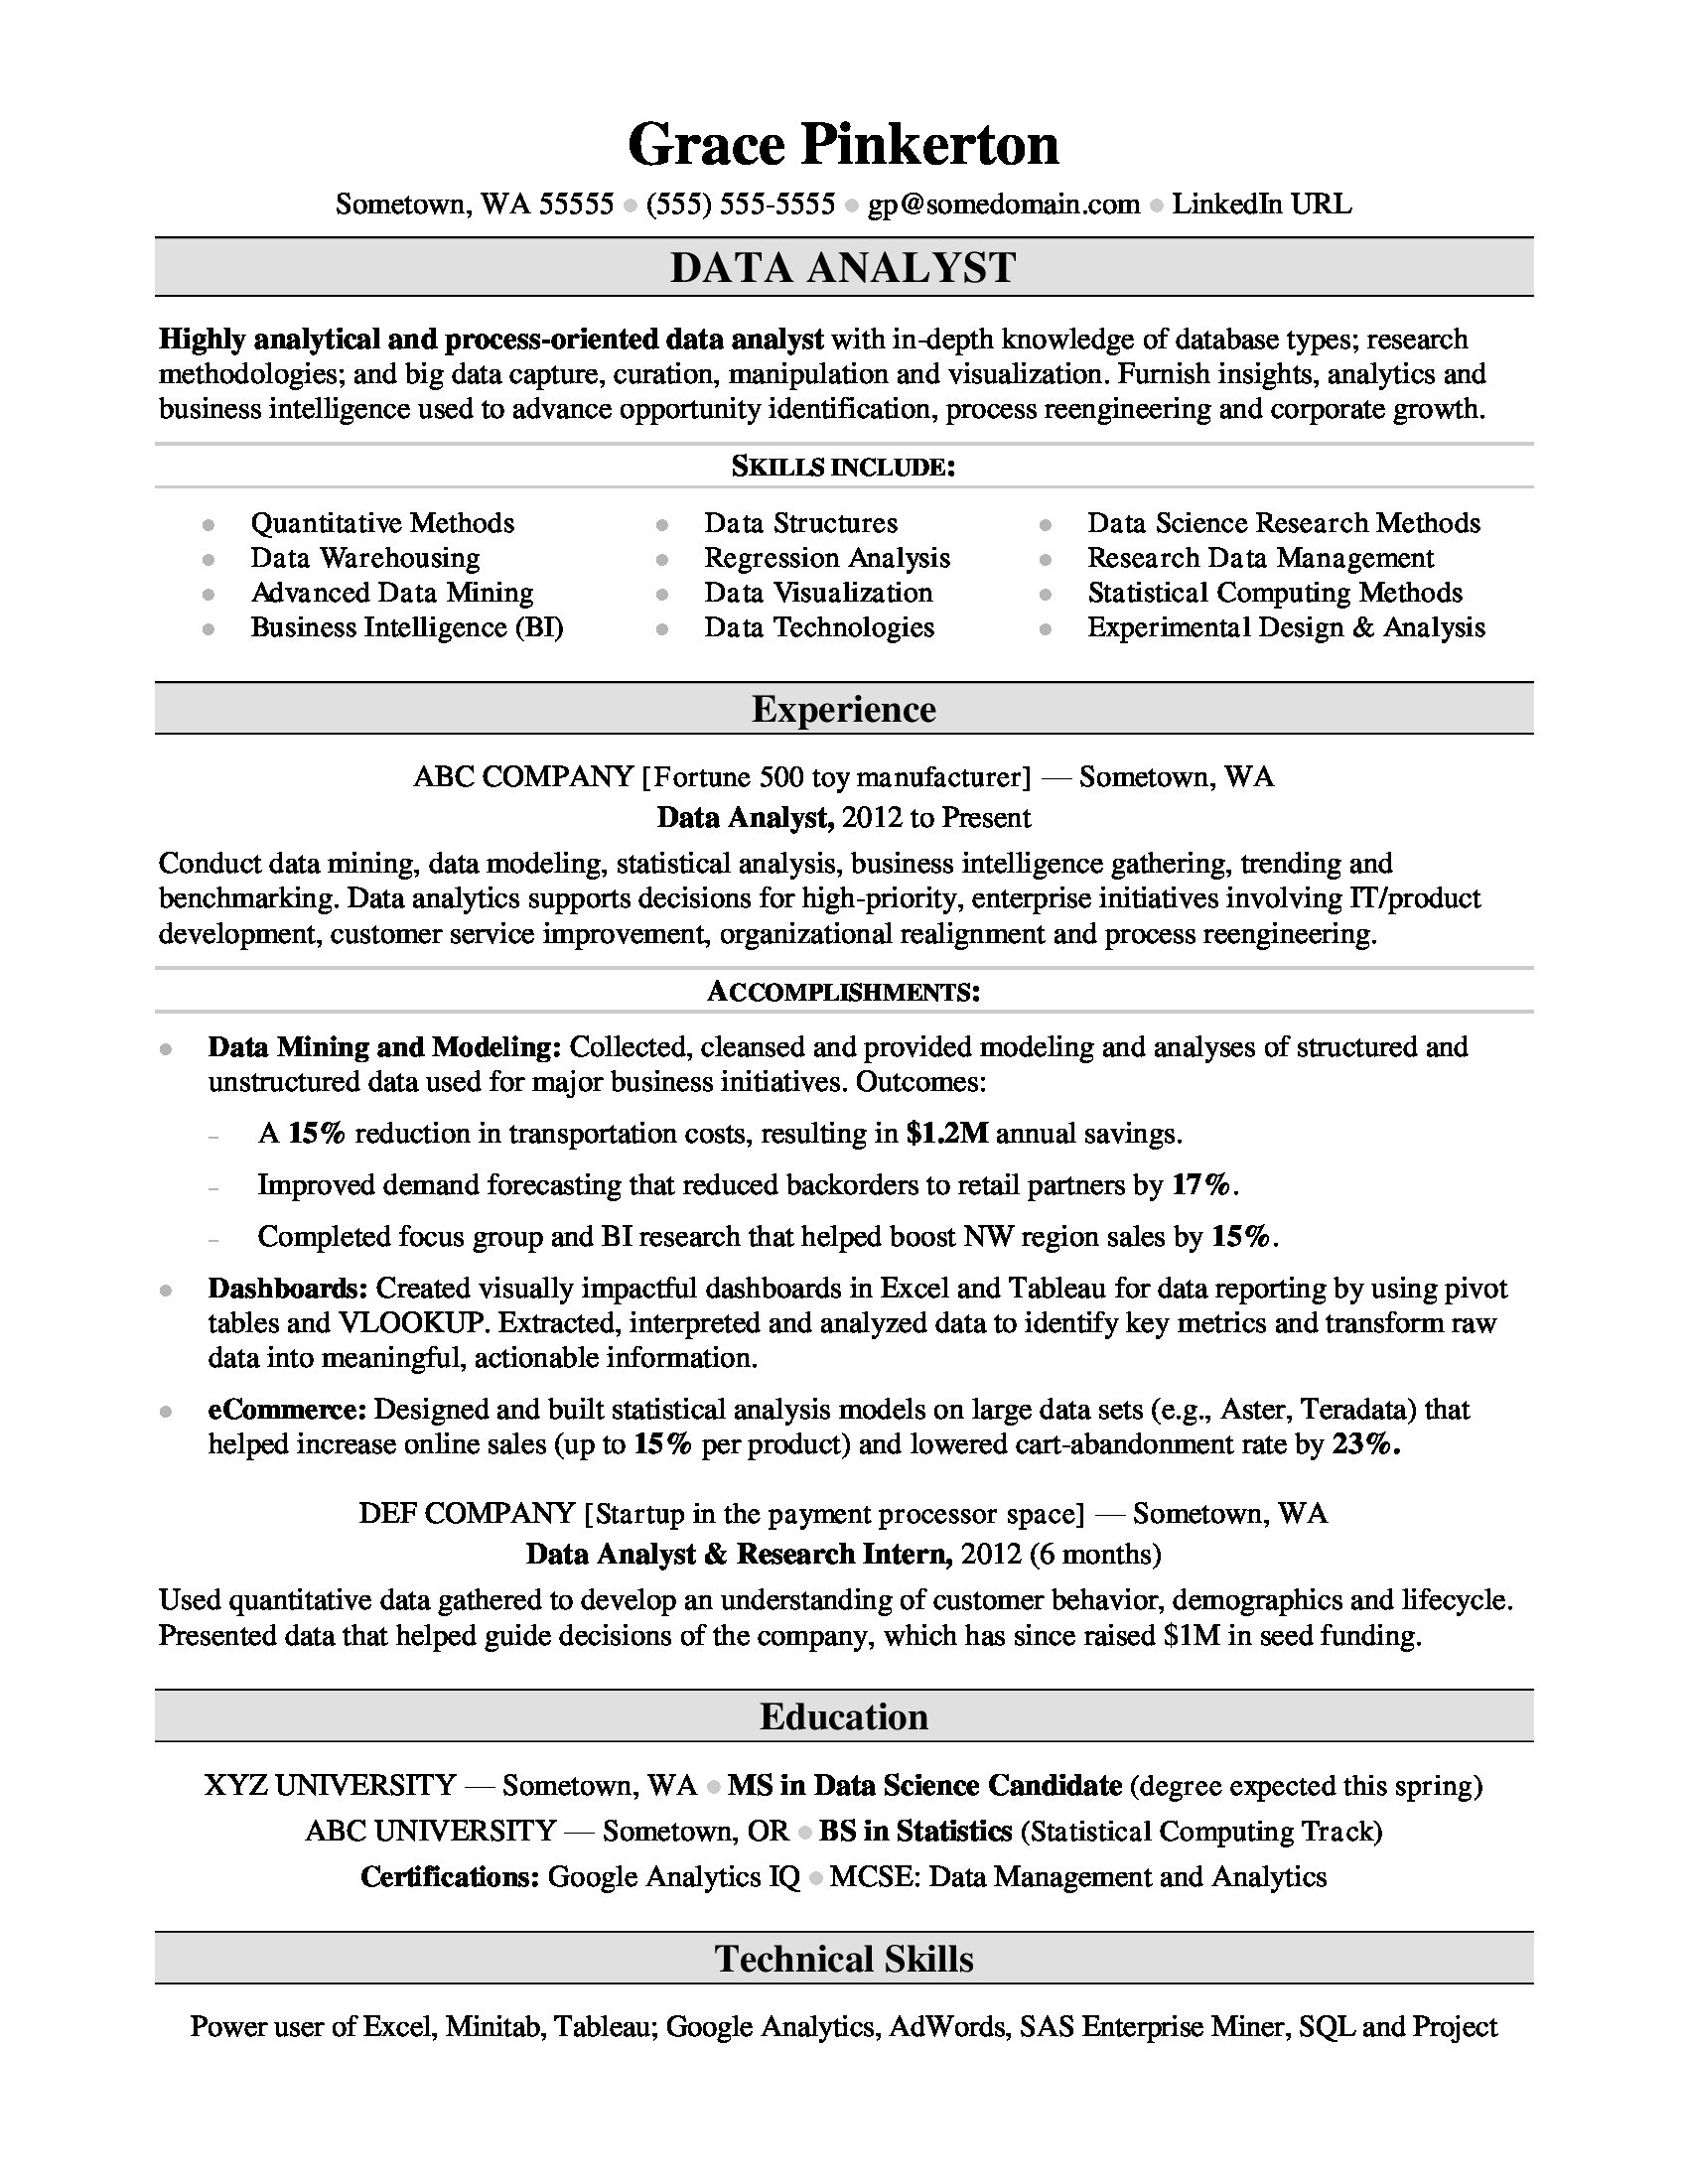 Data Analyst Resume Sample | Monster.com